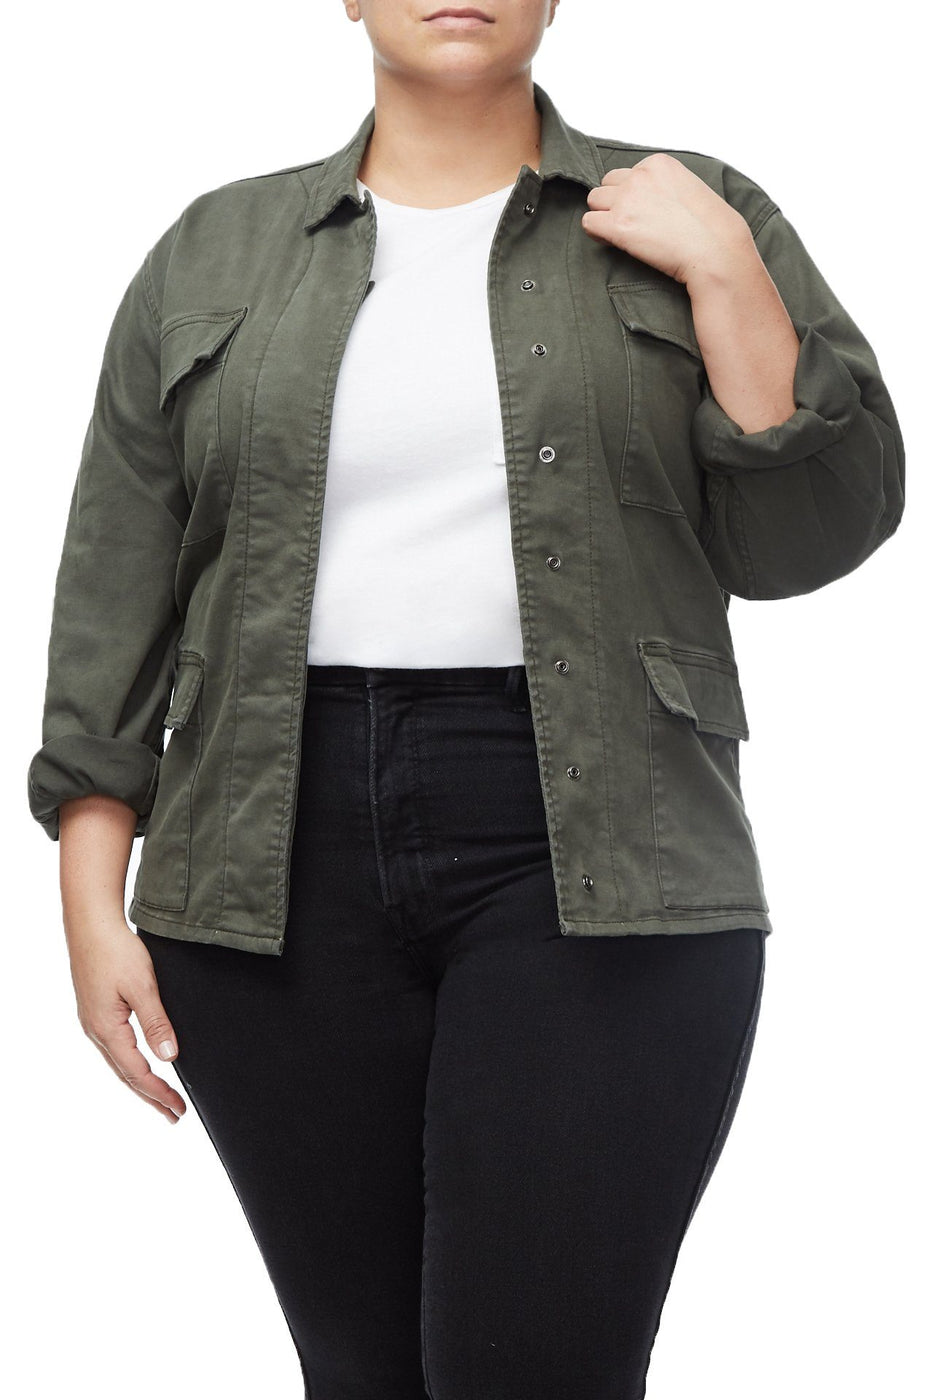 THE GIRL ON THE GO JACKET | OLIVE006